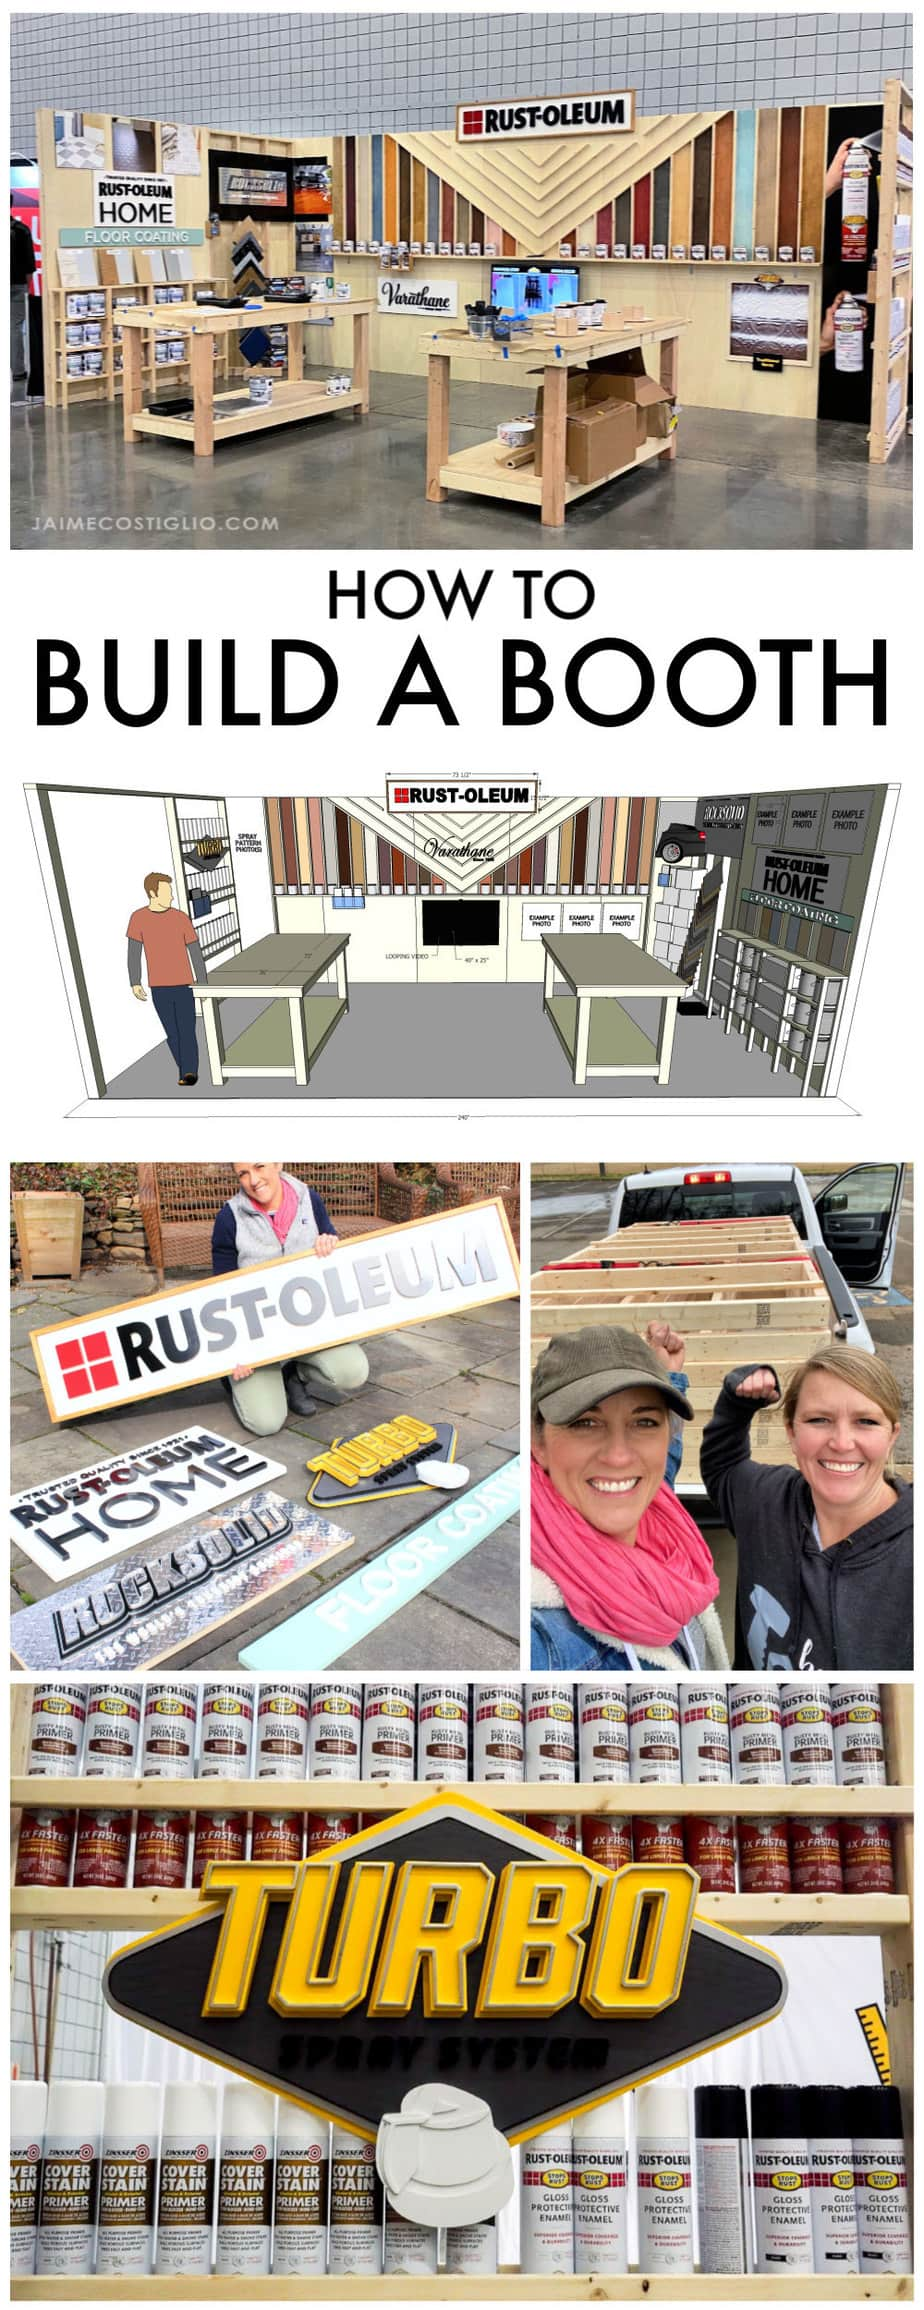 how to build a booth